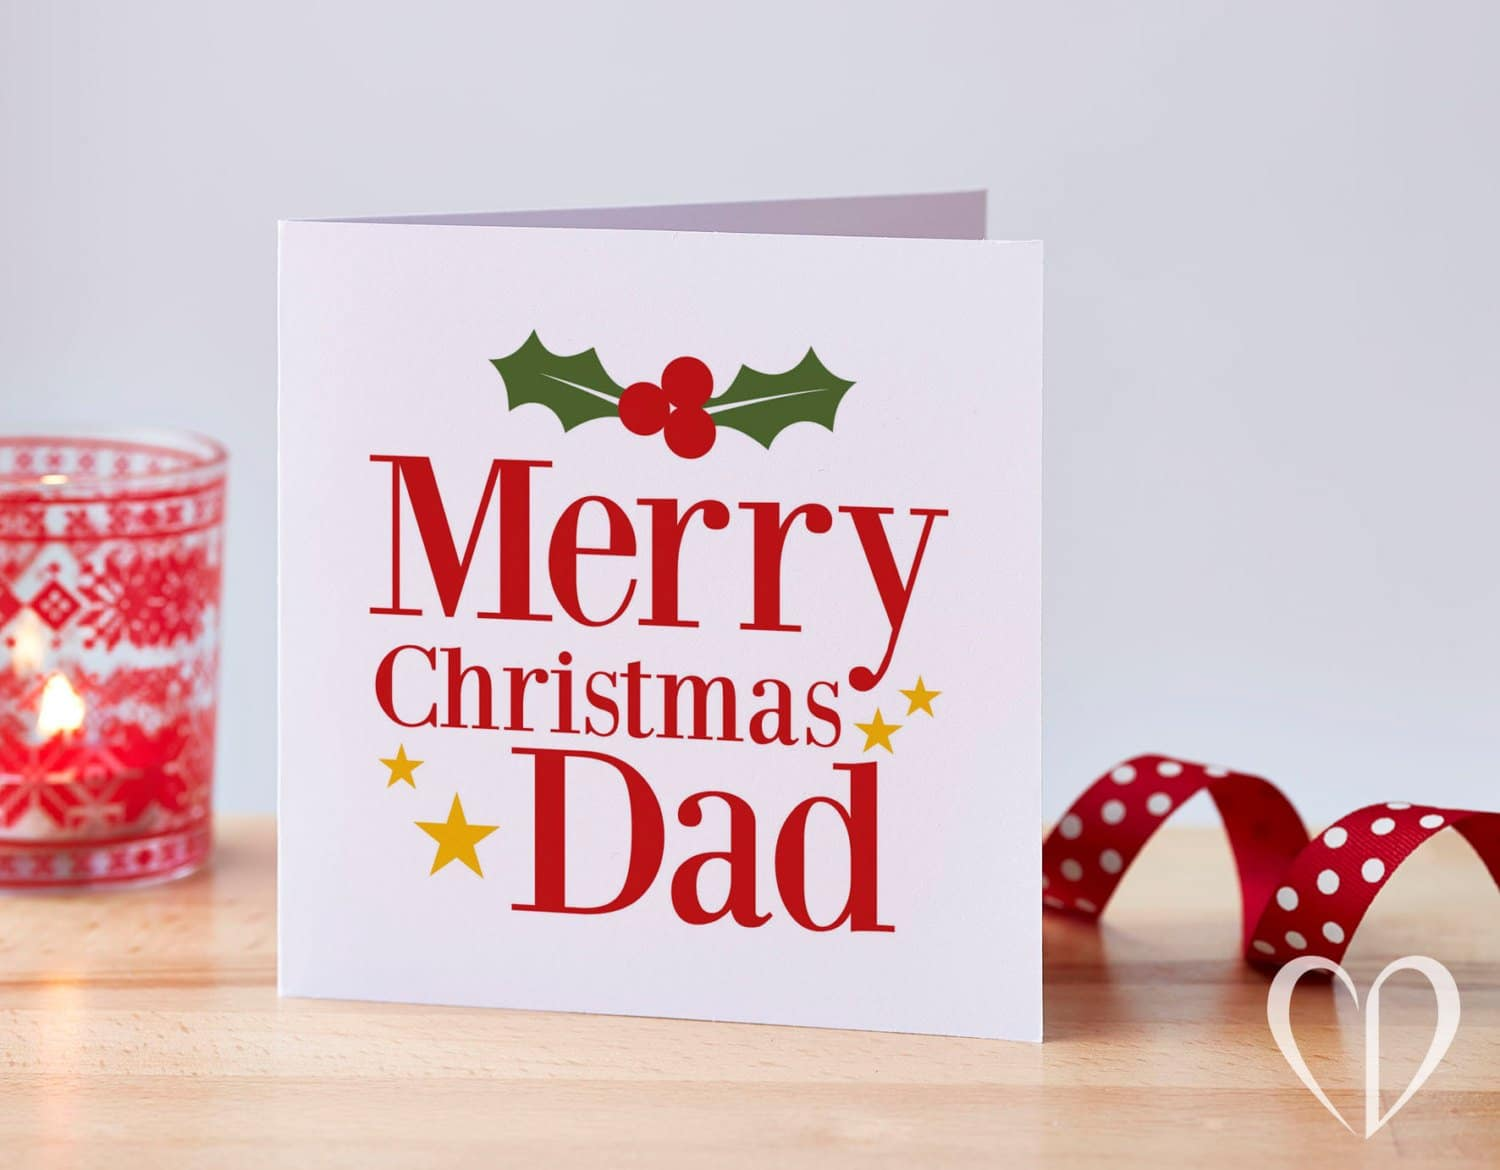 Merry Christmas Quotes Wishes For Dad